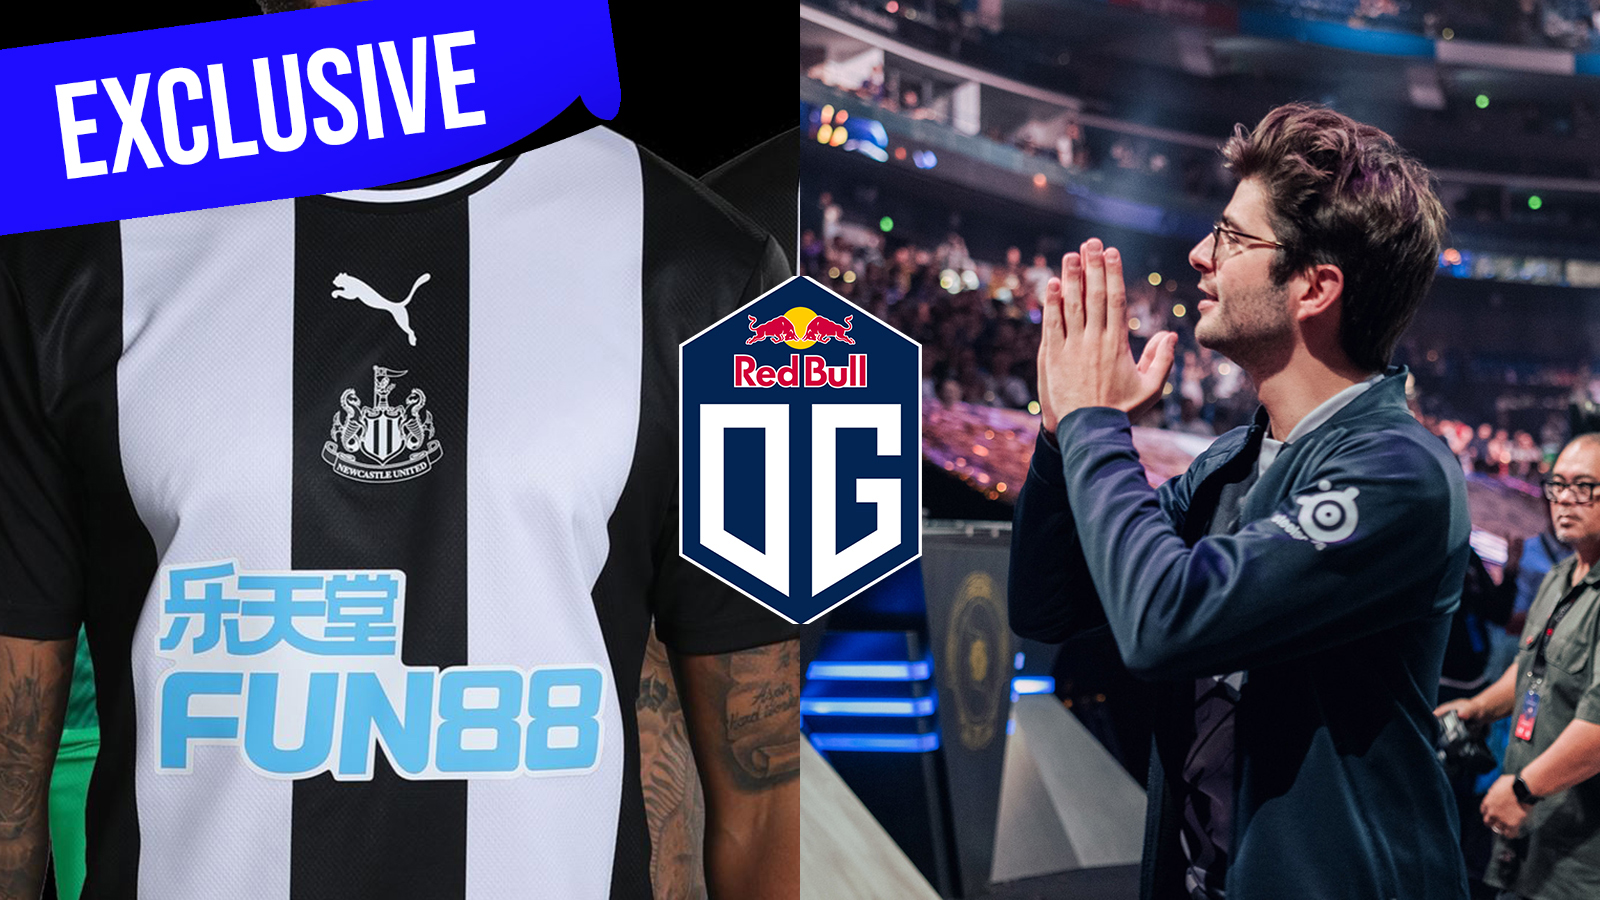 OG Esports partner with Fun88